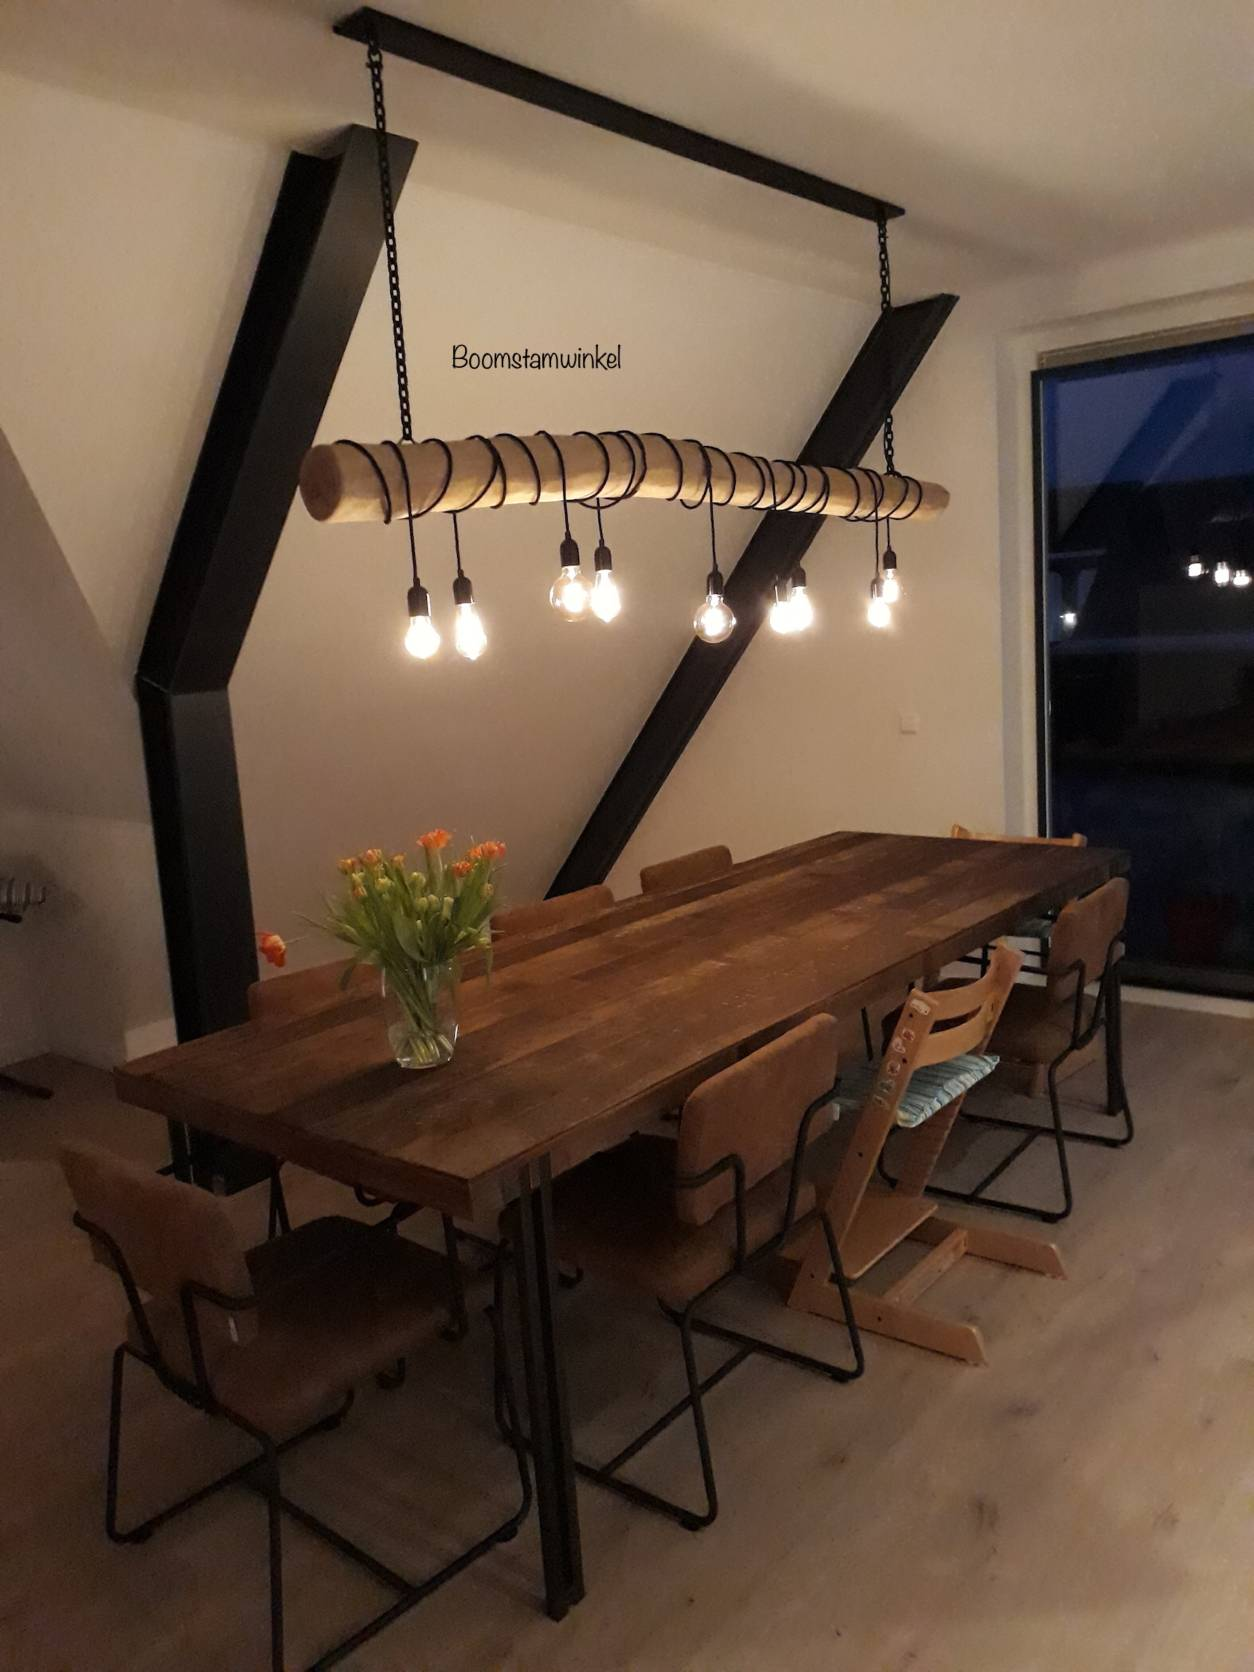 Hanglamp boomstam touw